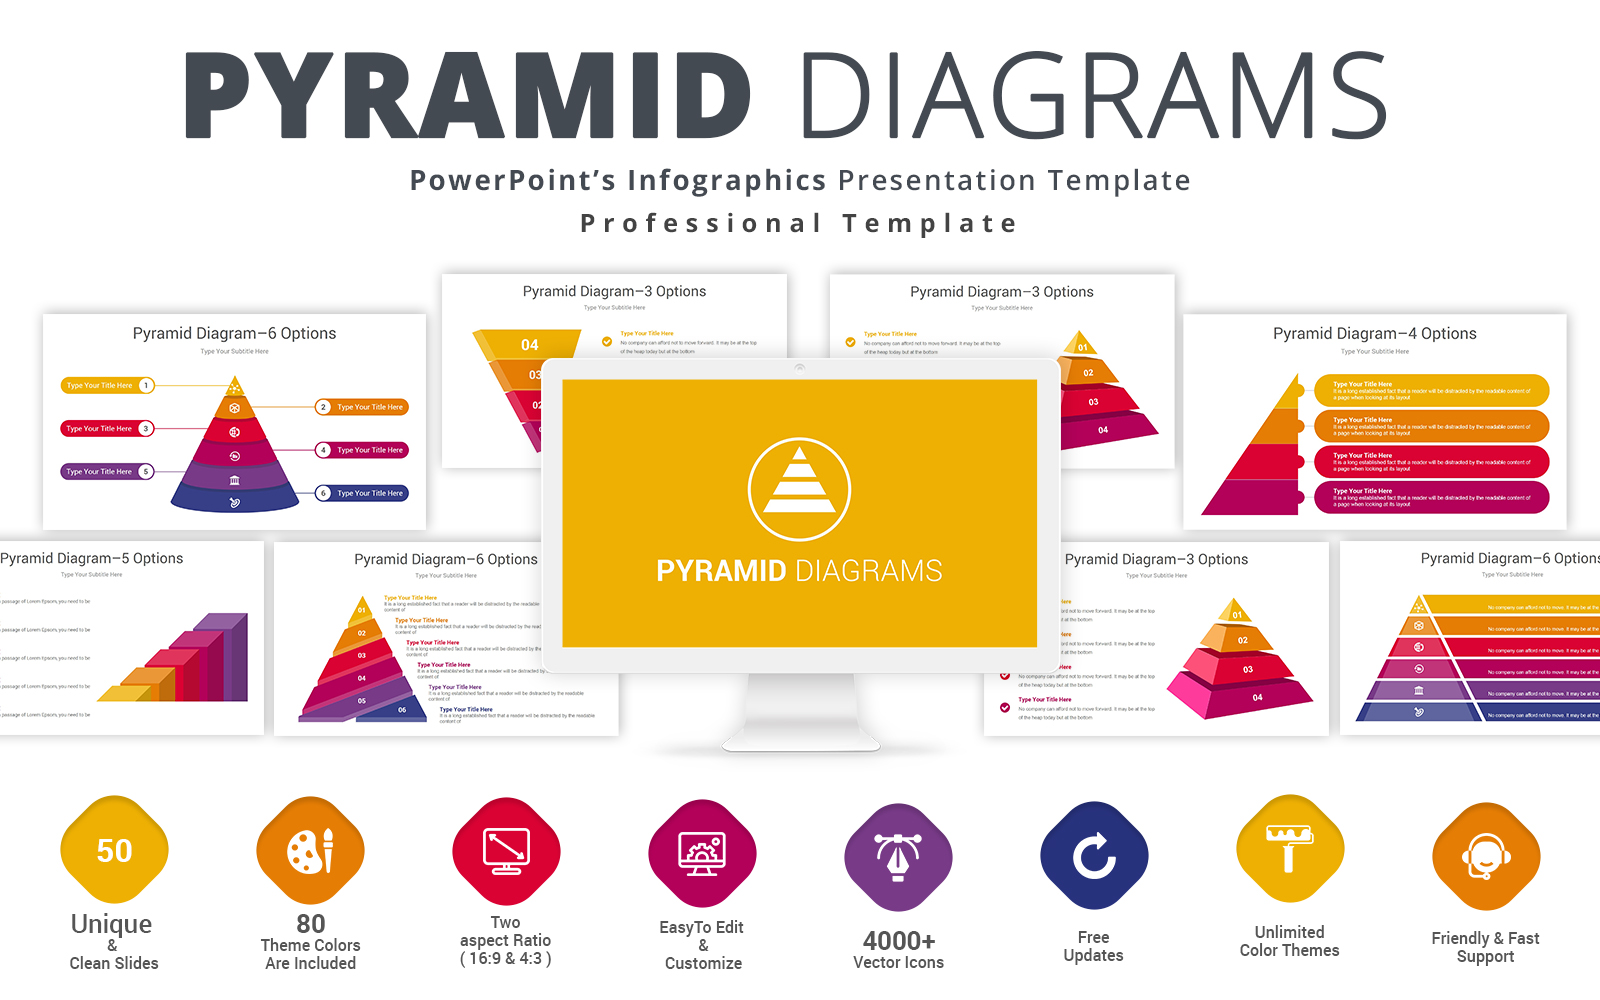 Pyramid Diagram Presentation PowerPoint Template